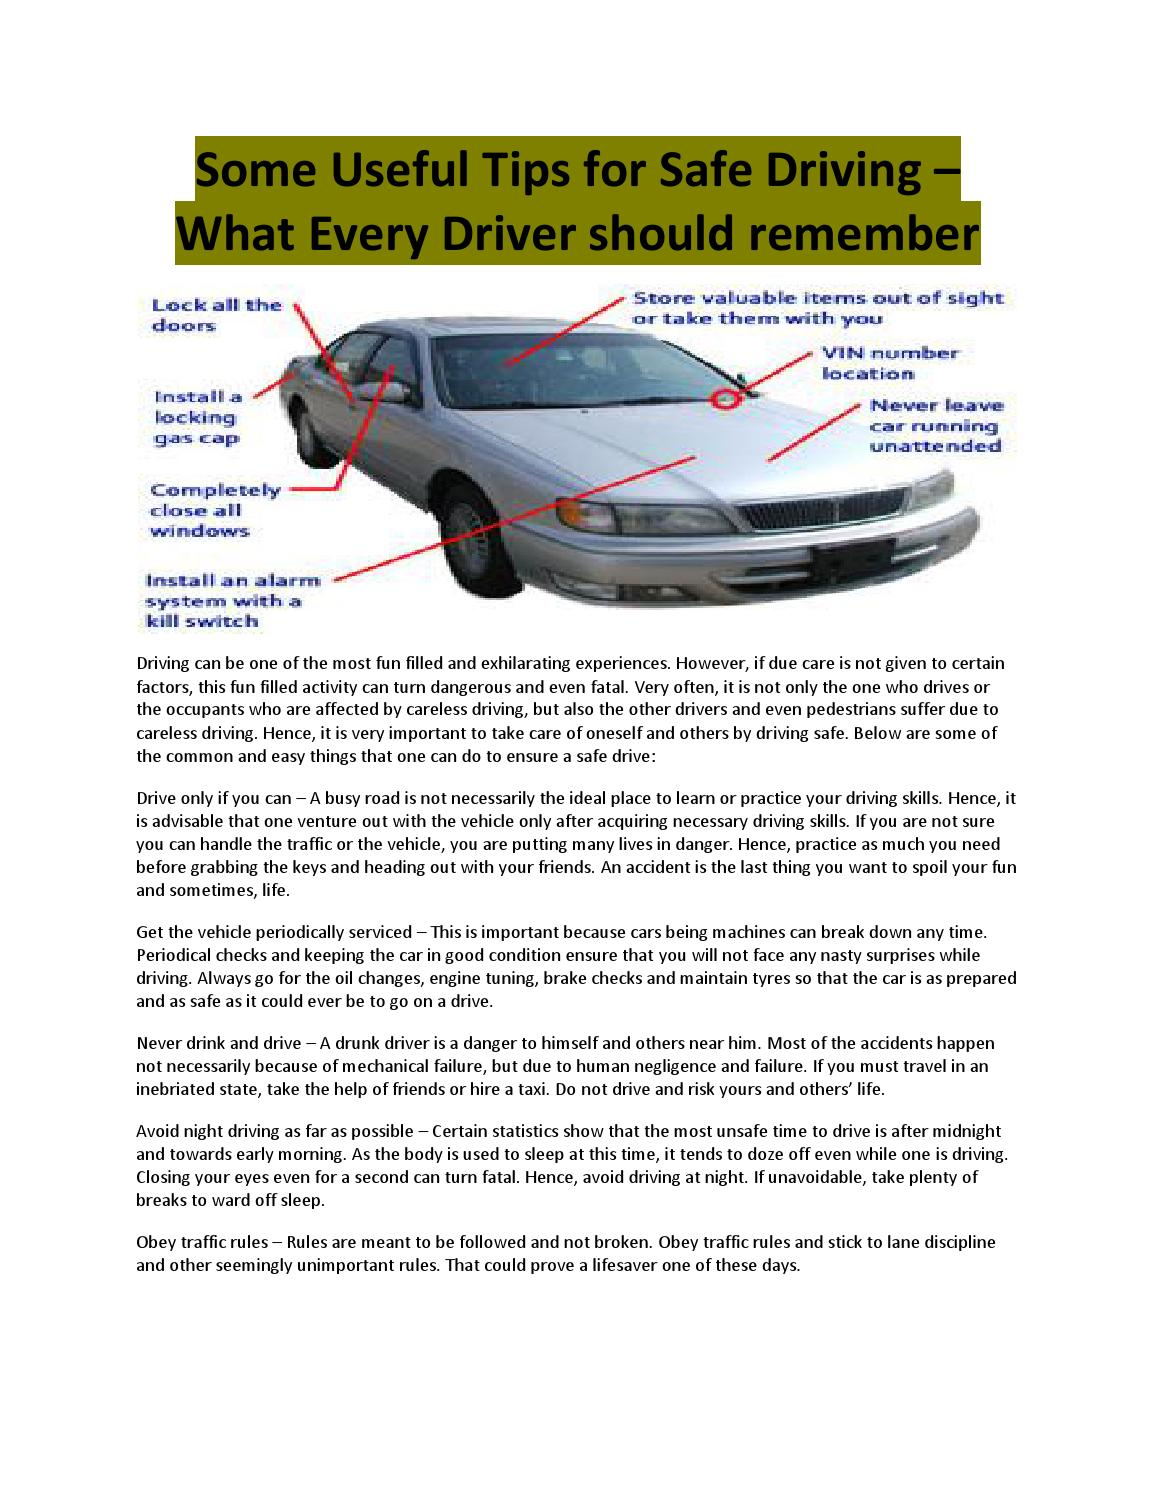 Some Useful Tips For Safe Driving What Every Driver Should Instead Of Using A Switch To The Parking Lamps Or Others As Shown Remember By Tommaxi Issuu